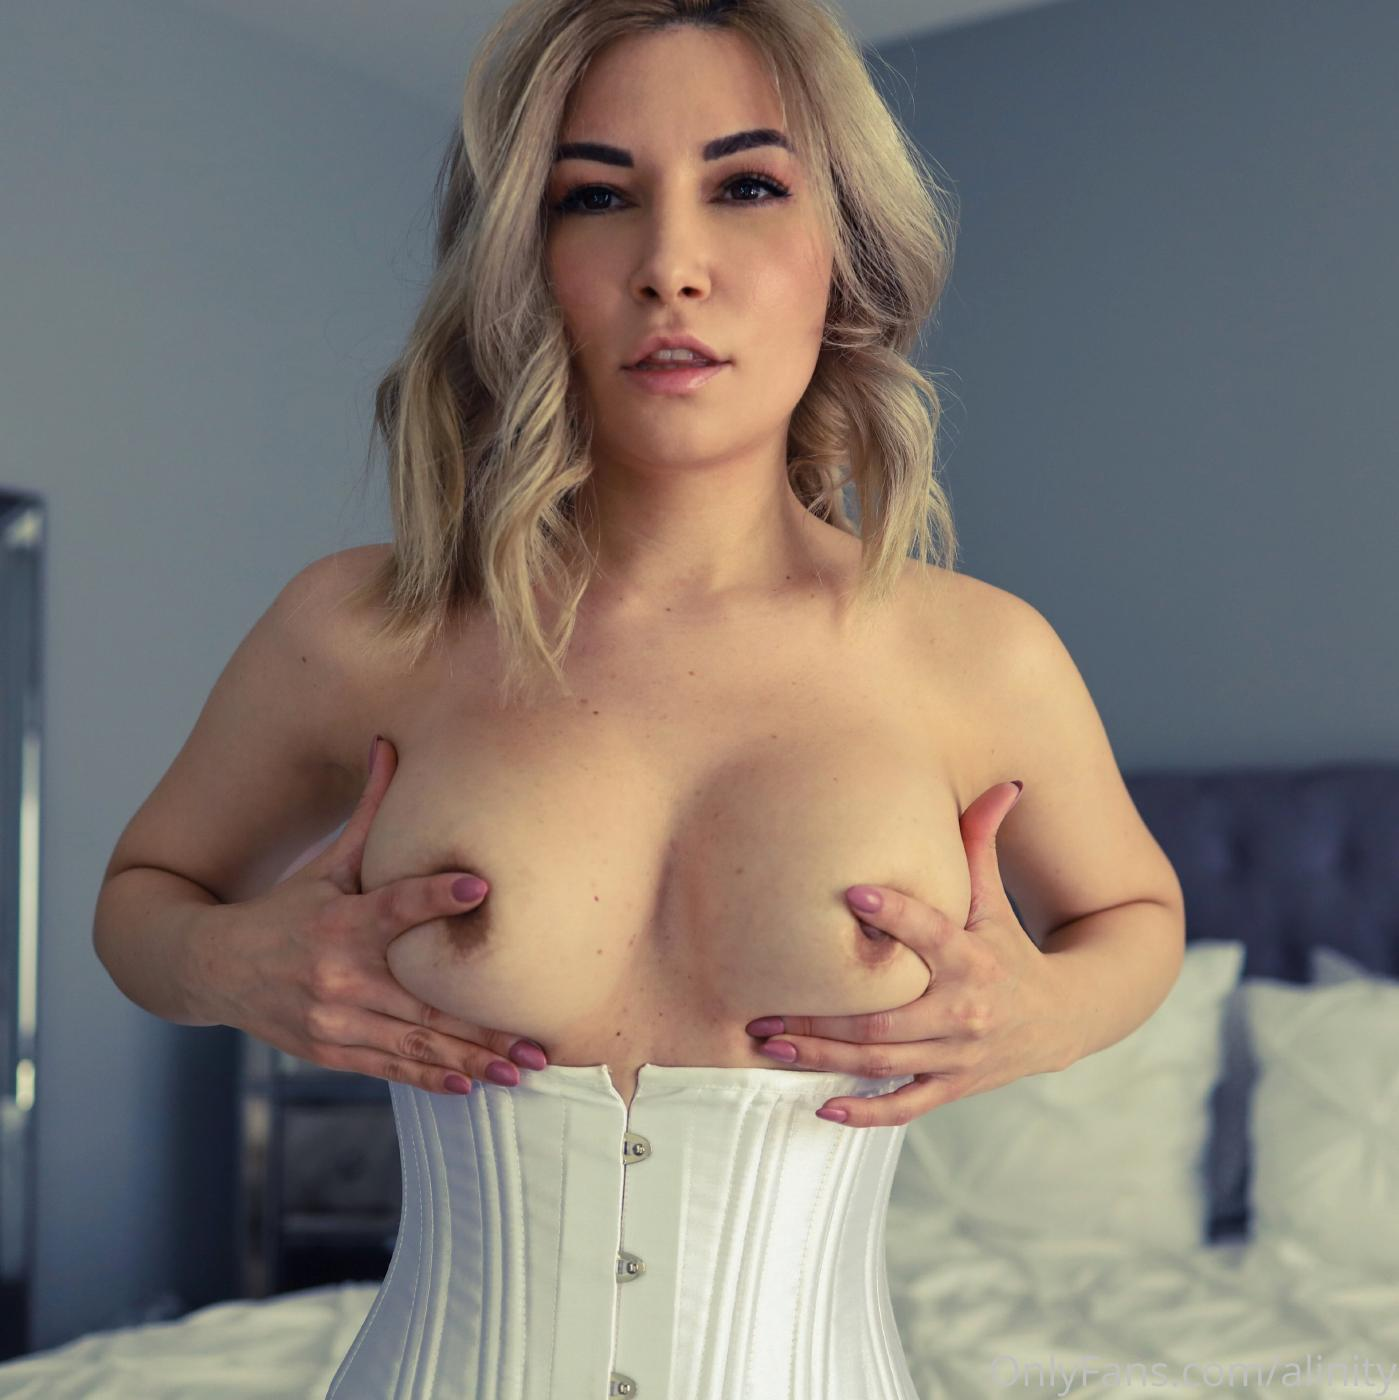 Alinity Topless Corset Onlyfans Set Leaked